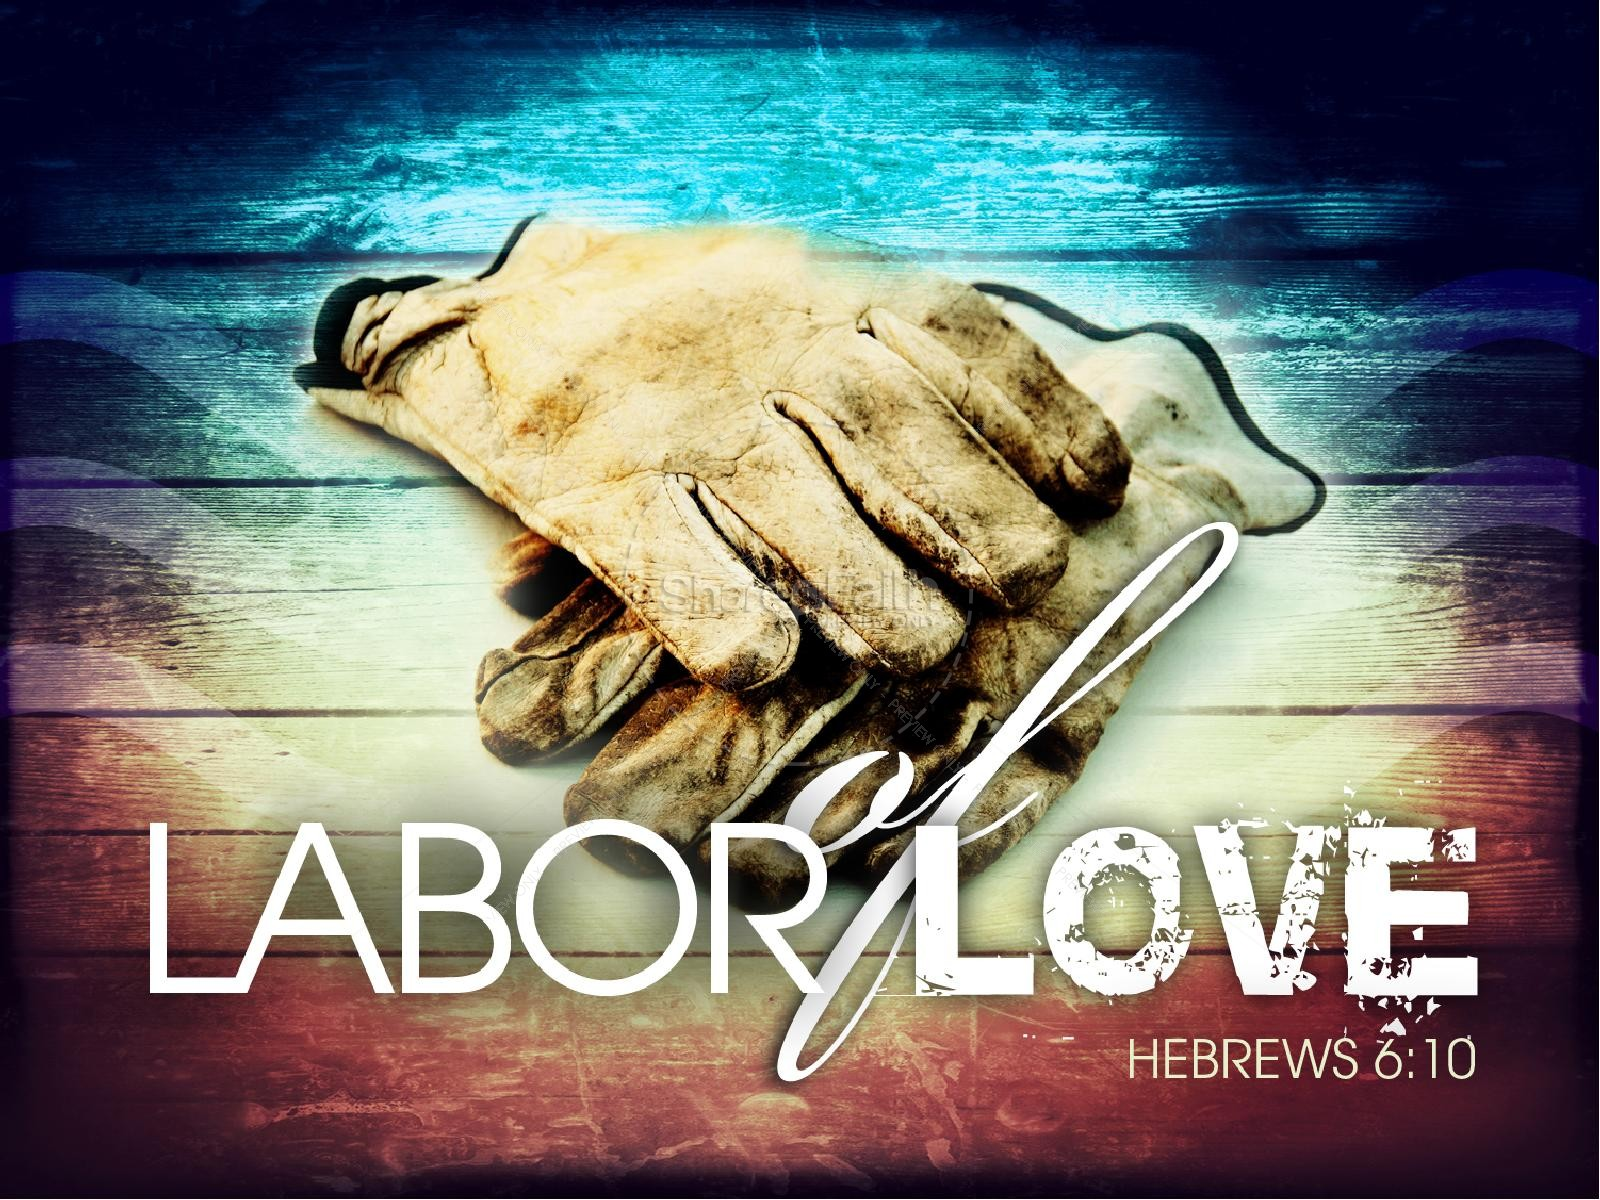 Labor day bible verse clipart stock Great Labor Day Church Motion Video Screen | Church Motion Graphics stock